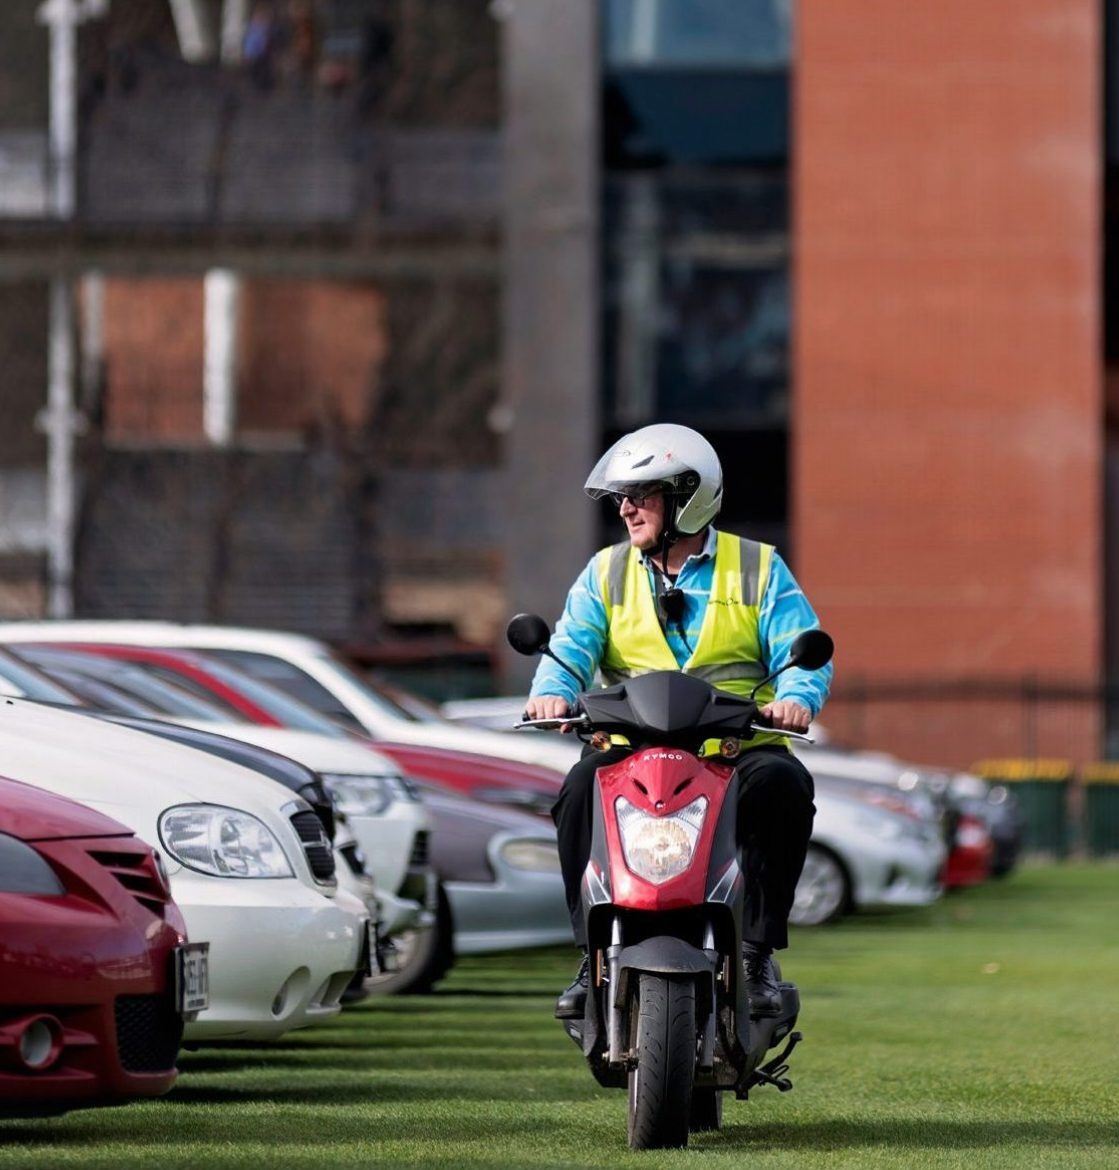 Adelaide Oval Car Parking Attendant